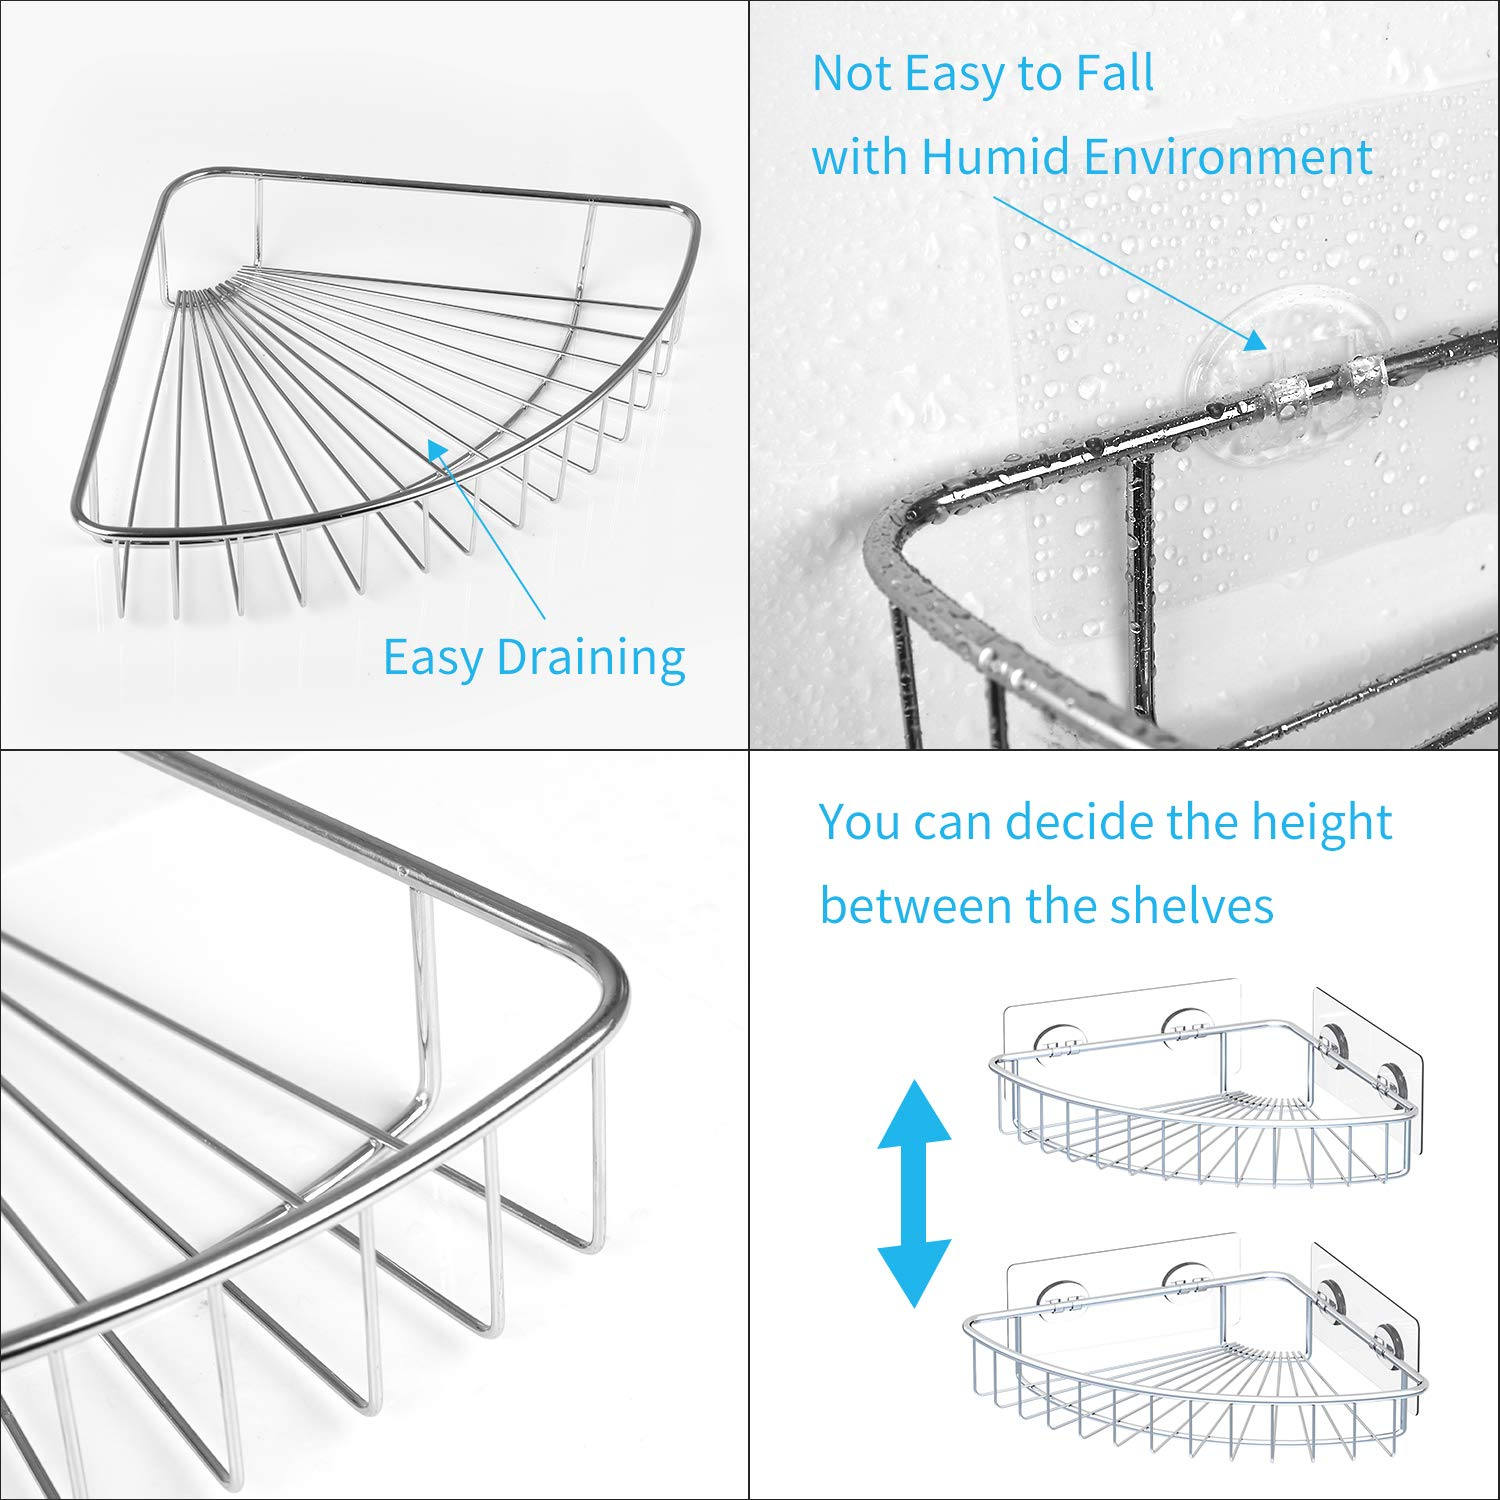 SMARTAKE 2-Pack Corner Shower Caddy, SUS304 Stainless Steel, Wall Mounted Bathroom Shelf with Adhesive, Storage Organizer for Toilet, Dorm and Kitchen by SMARTAKE (Image #4)